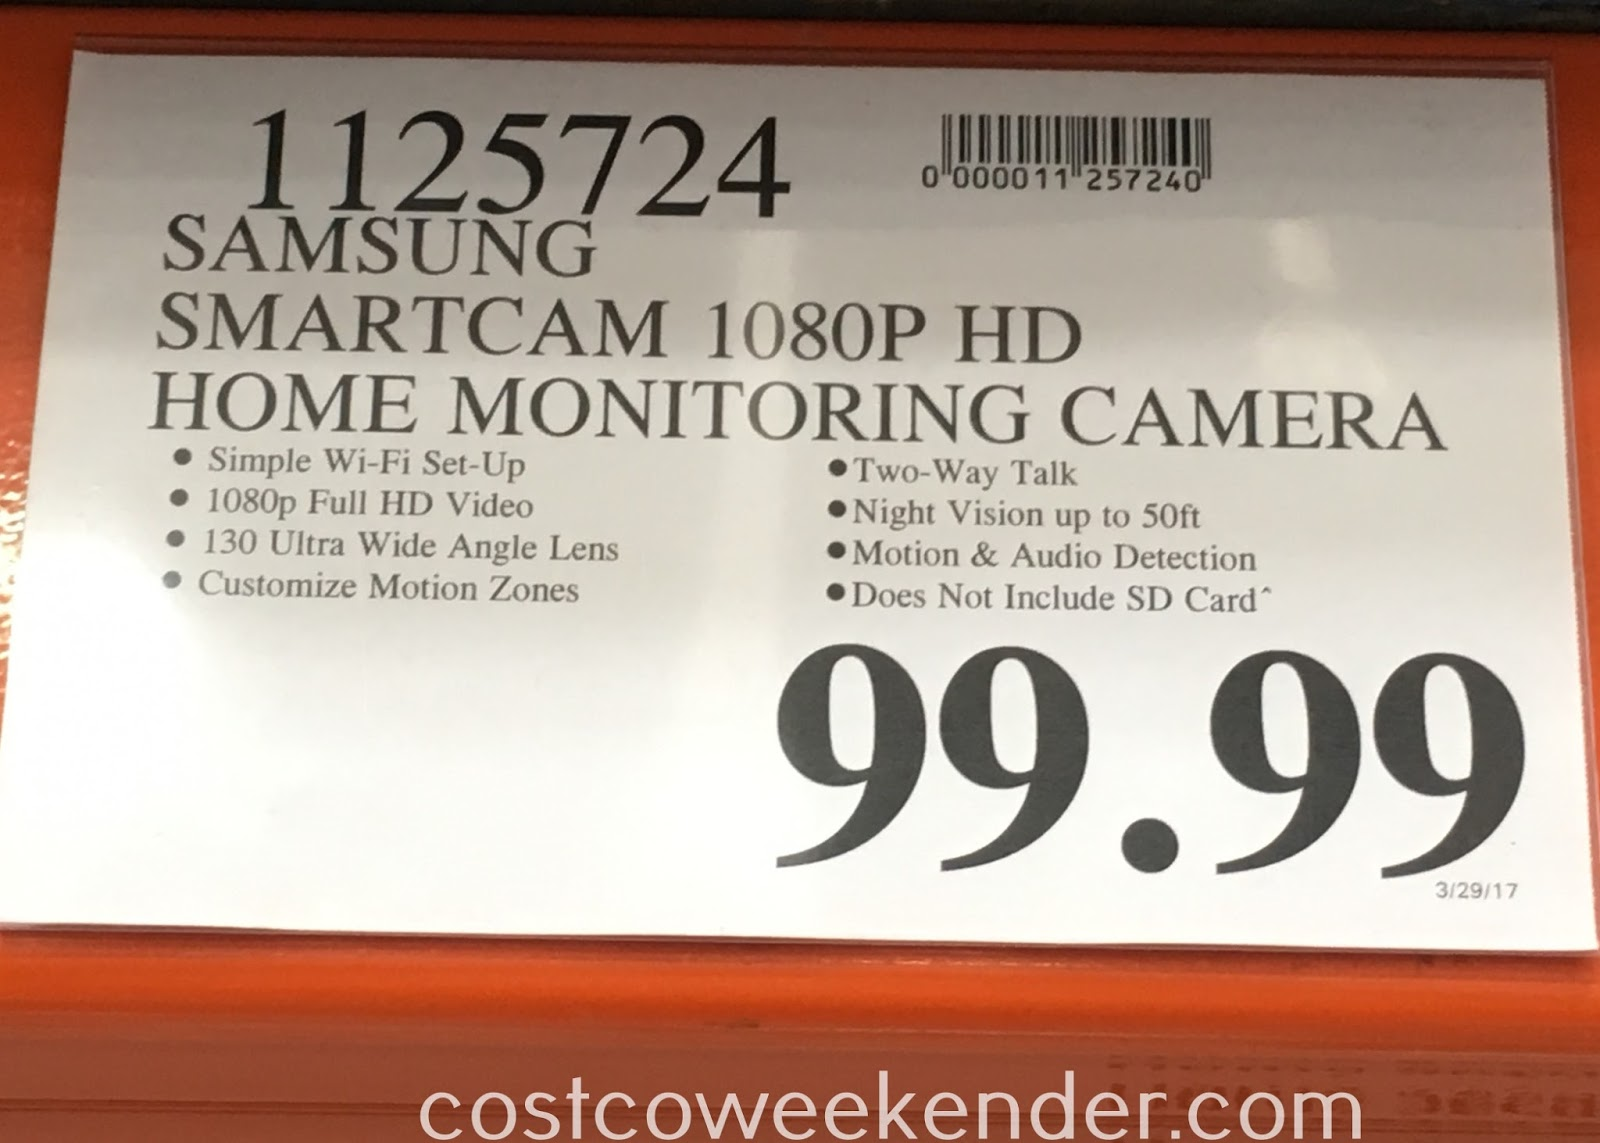 Deal for the Samsung SmartCam SNH-V6431BN Home Security Camera at Costco